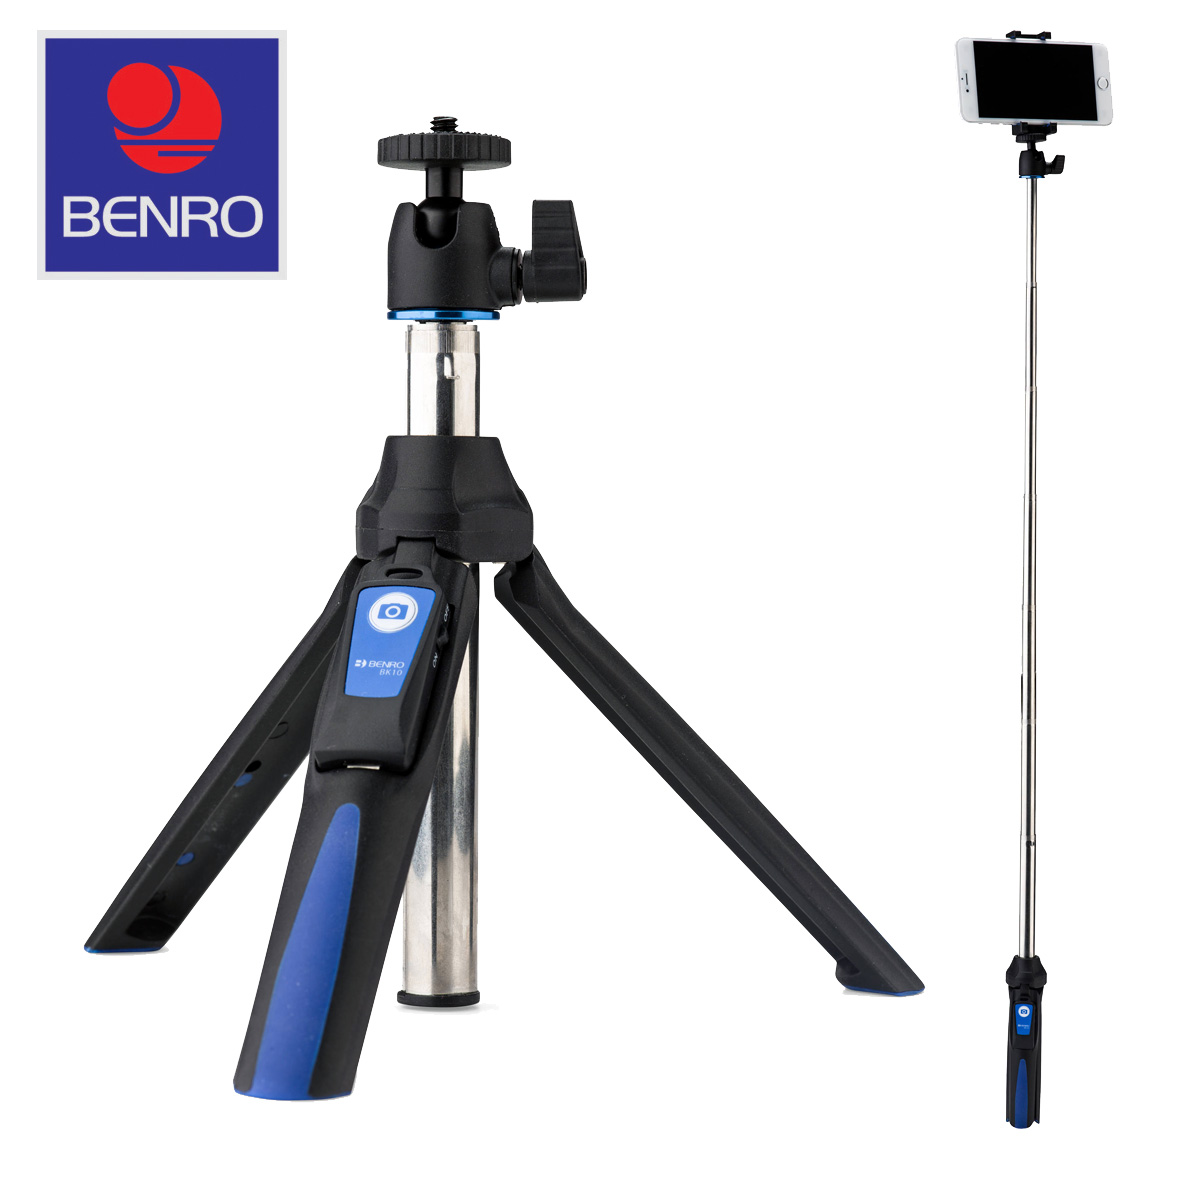 benro mini tripod selfie stick with ball head adapters for gopro and smartphones ebay. Black Bedroom Furniture Sets. Home Design Ideas